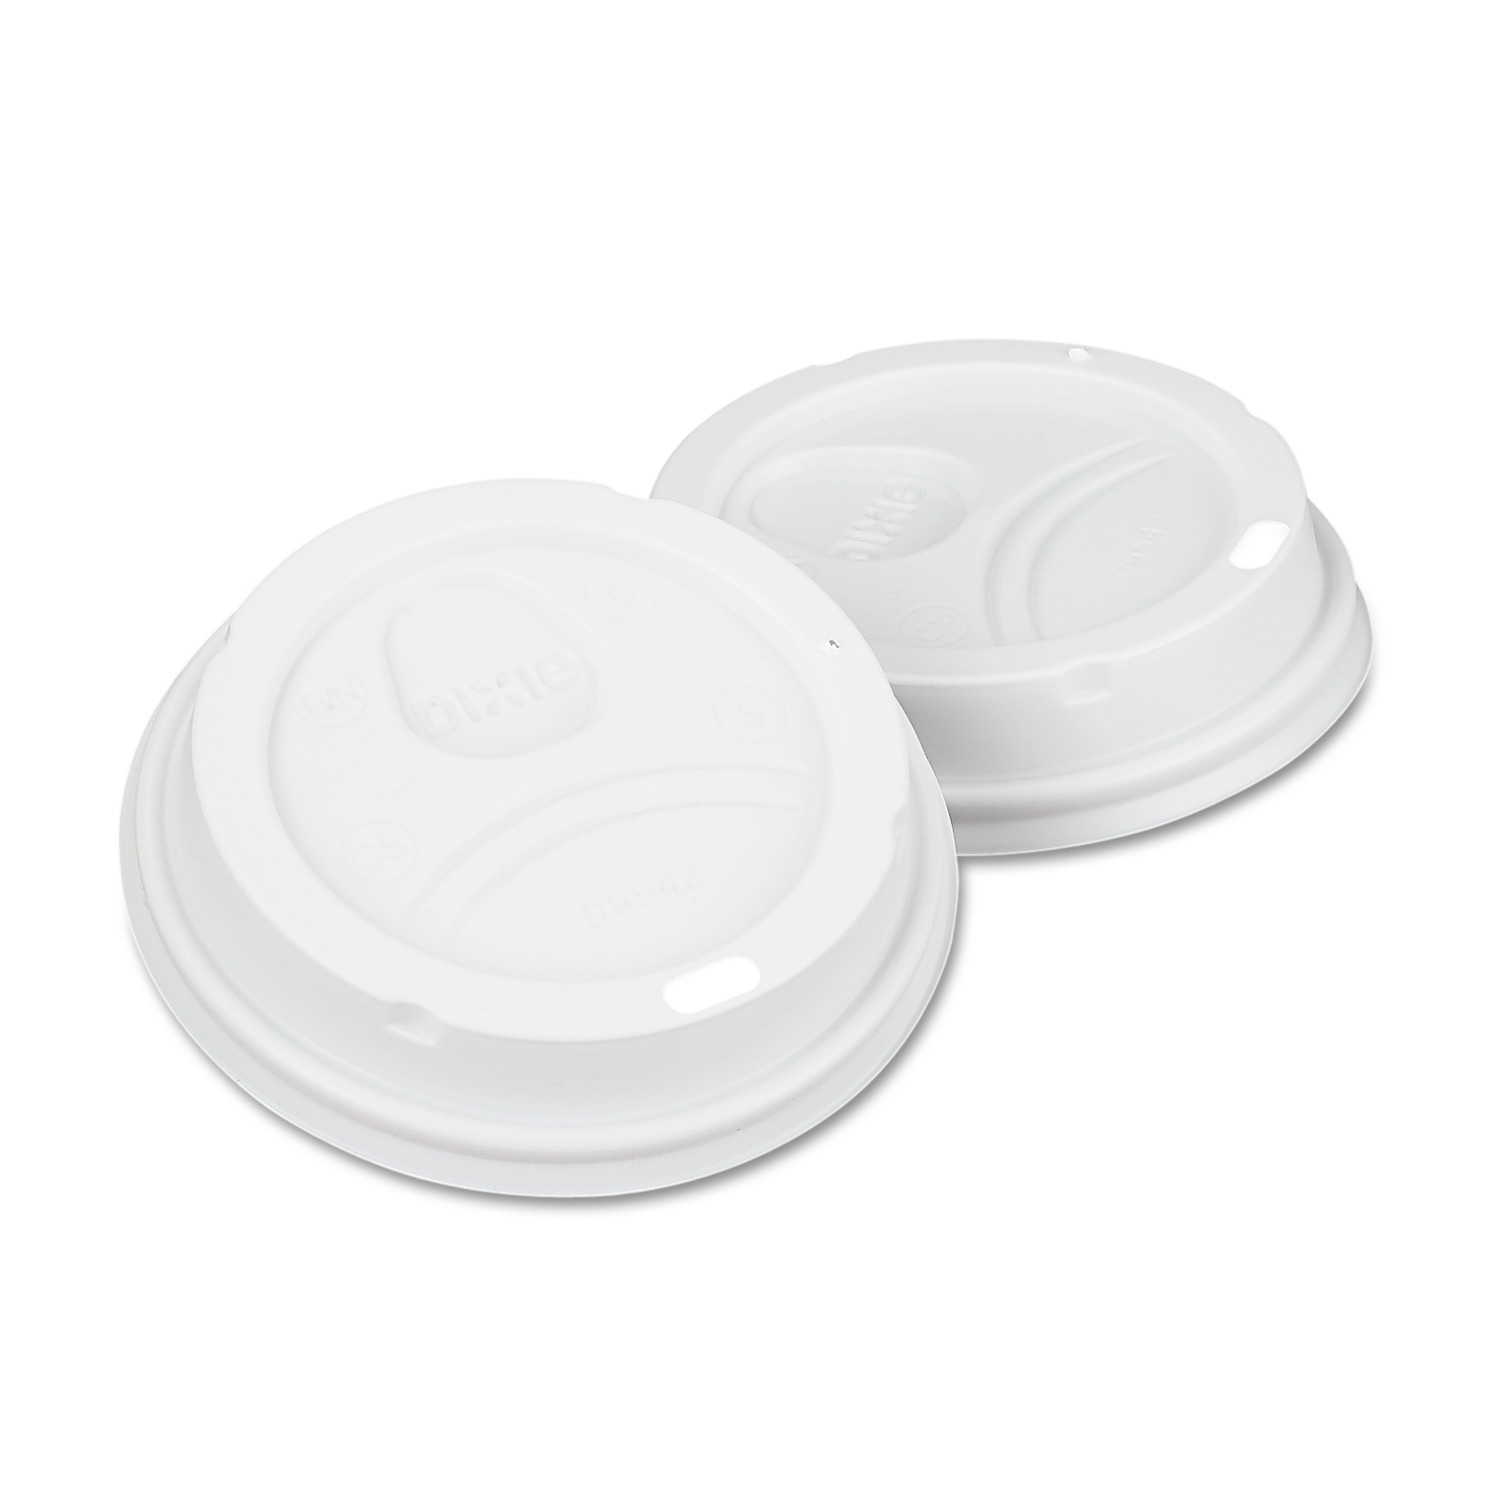 Dixie White Dome Lid Fits 10-16oz Perfectouch Cups, 12-20oz Hot Cups, WiseSize, 500/CT